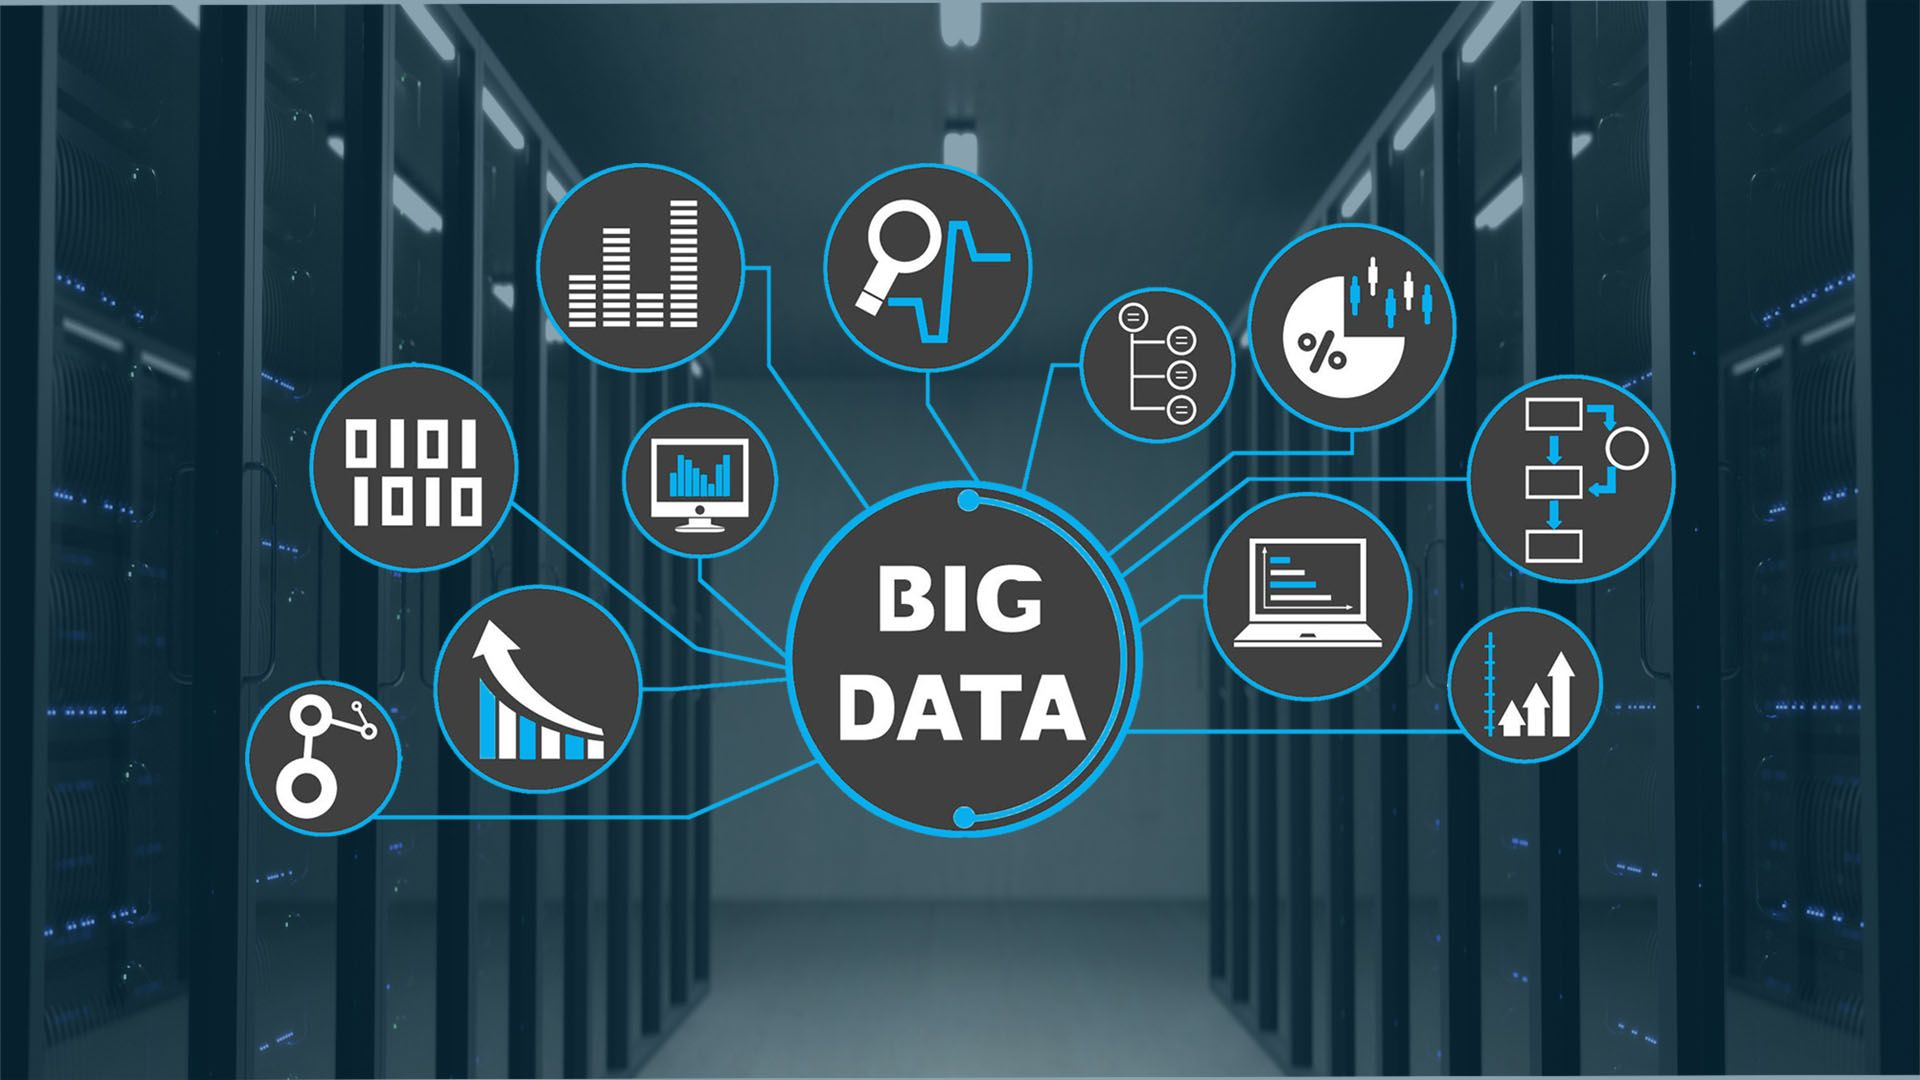 11 Best Big Data Courses & Certifications - Learn Bigdata Online